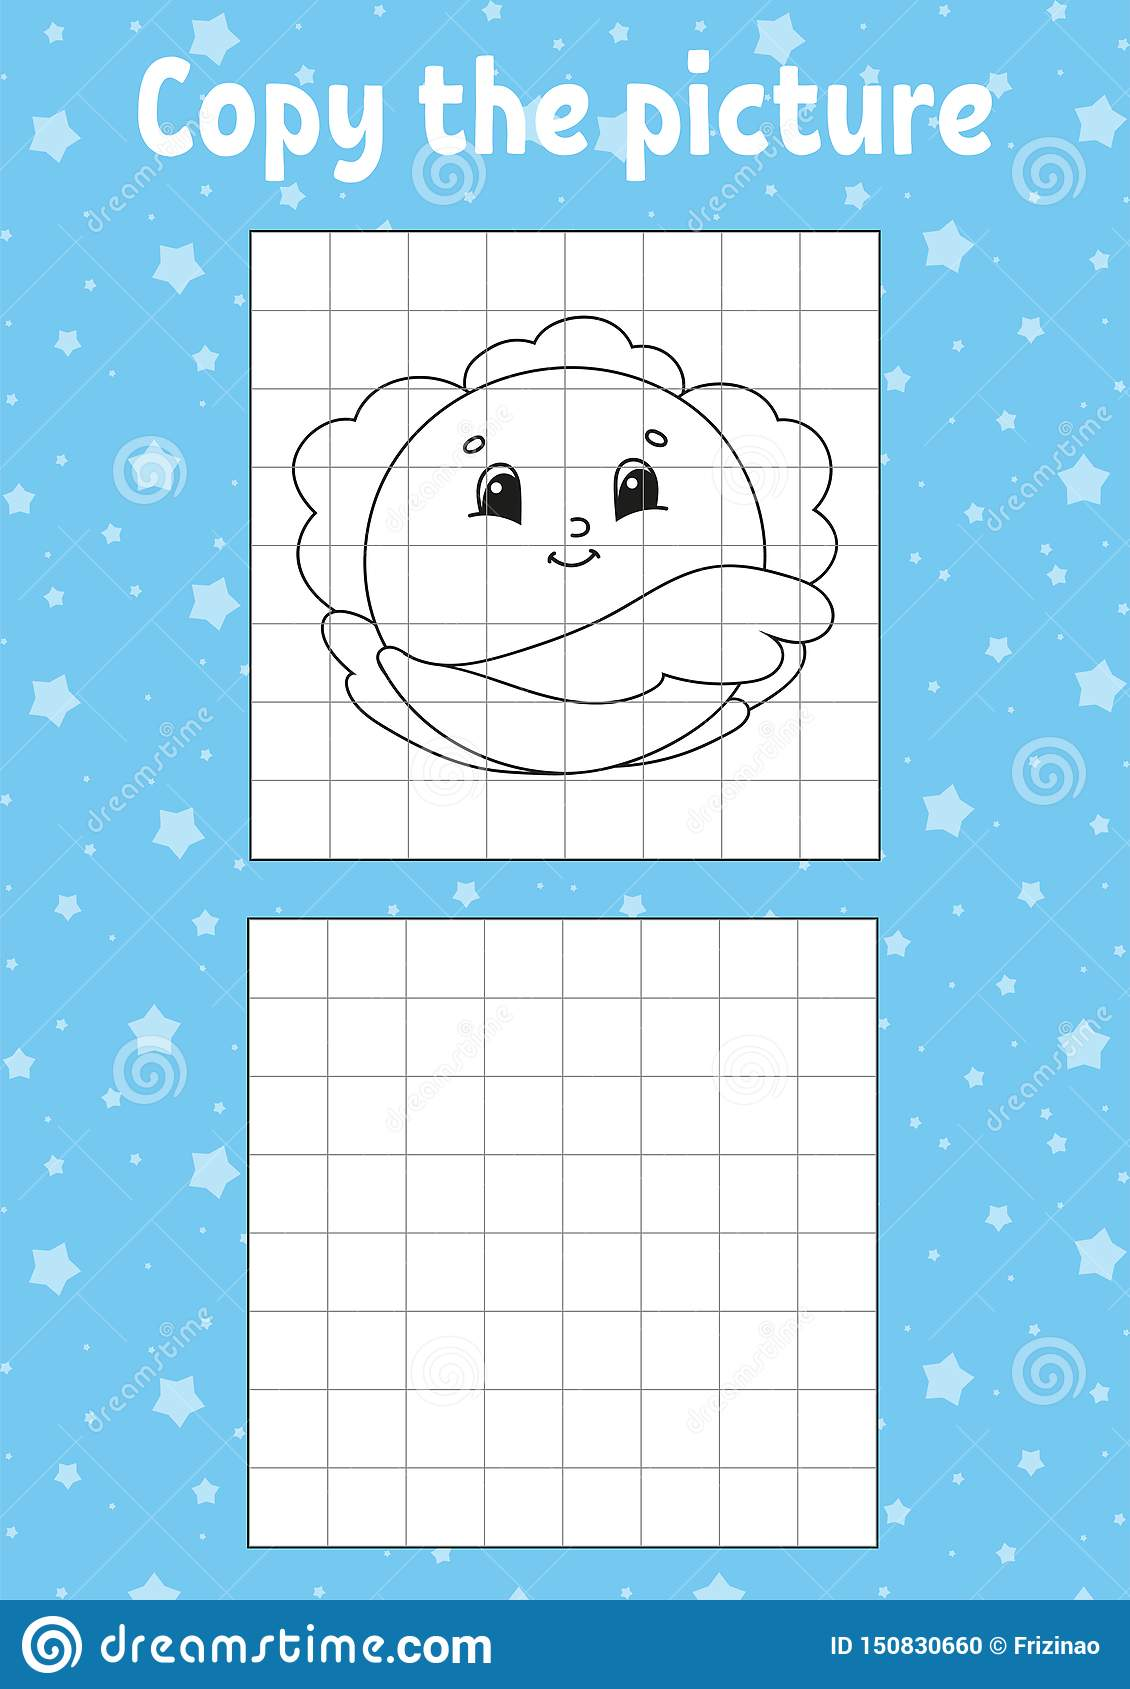 Copy The Picture Coloring Book Pages For Kids Education